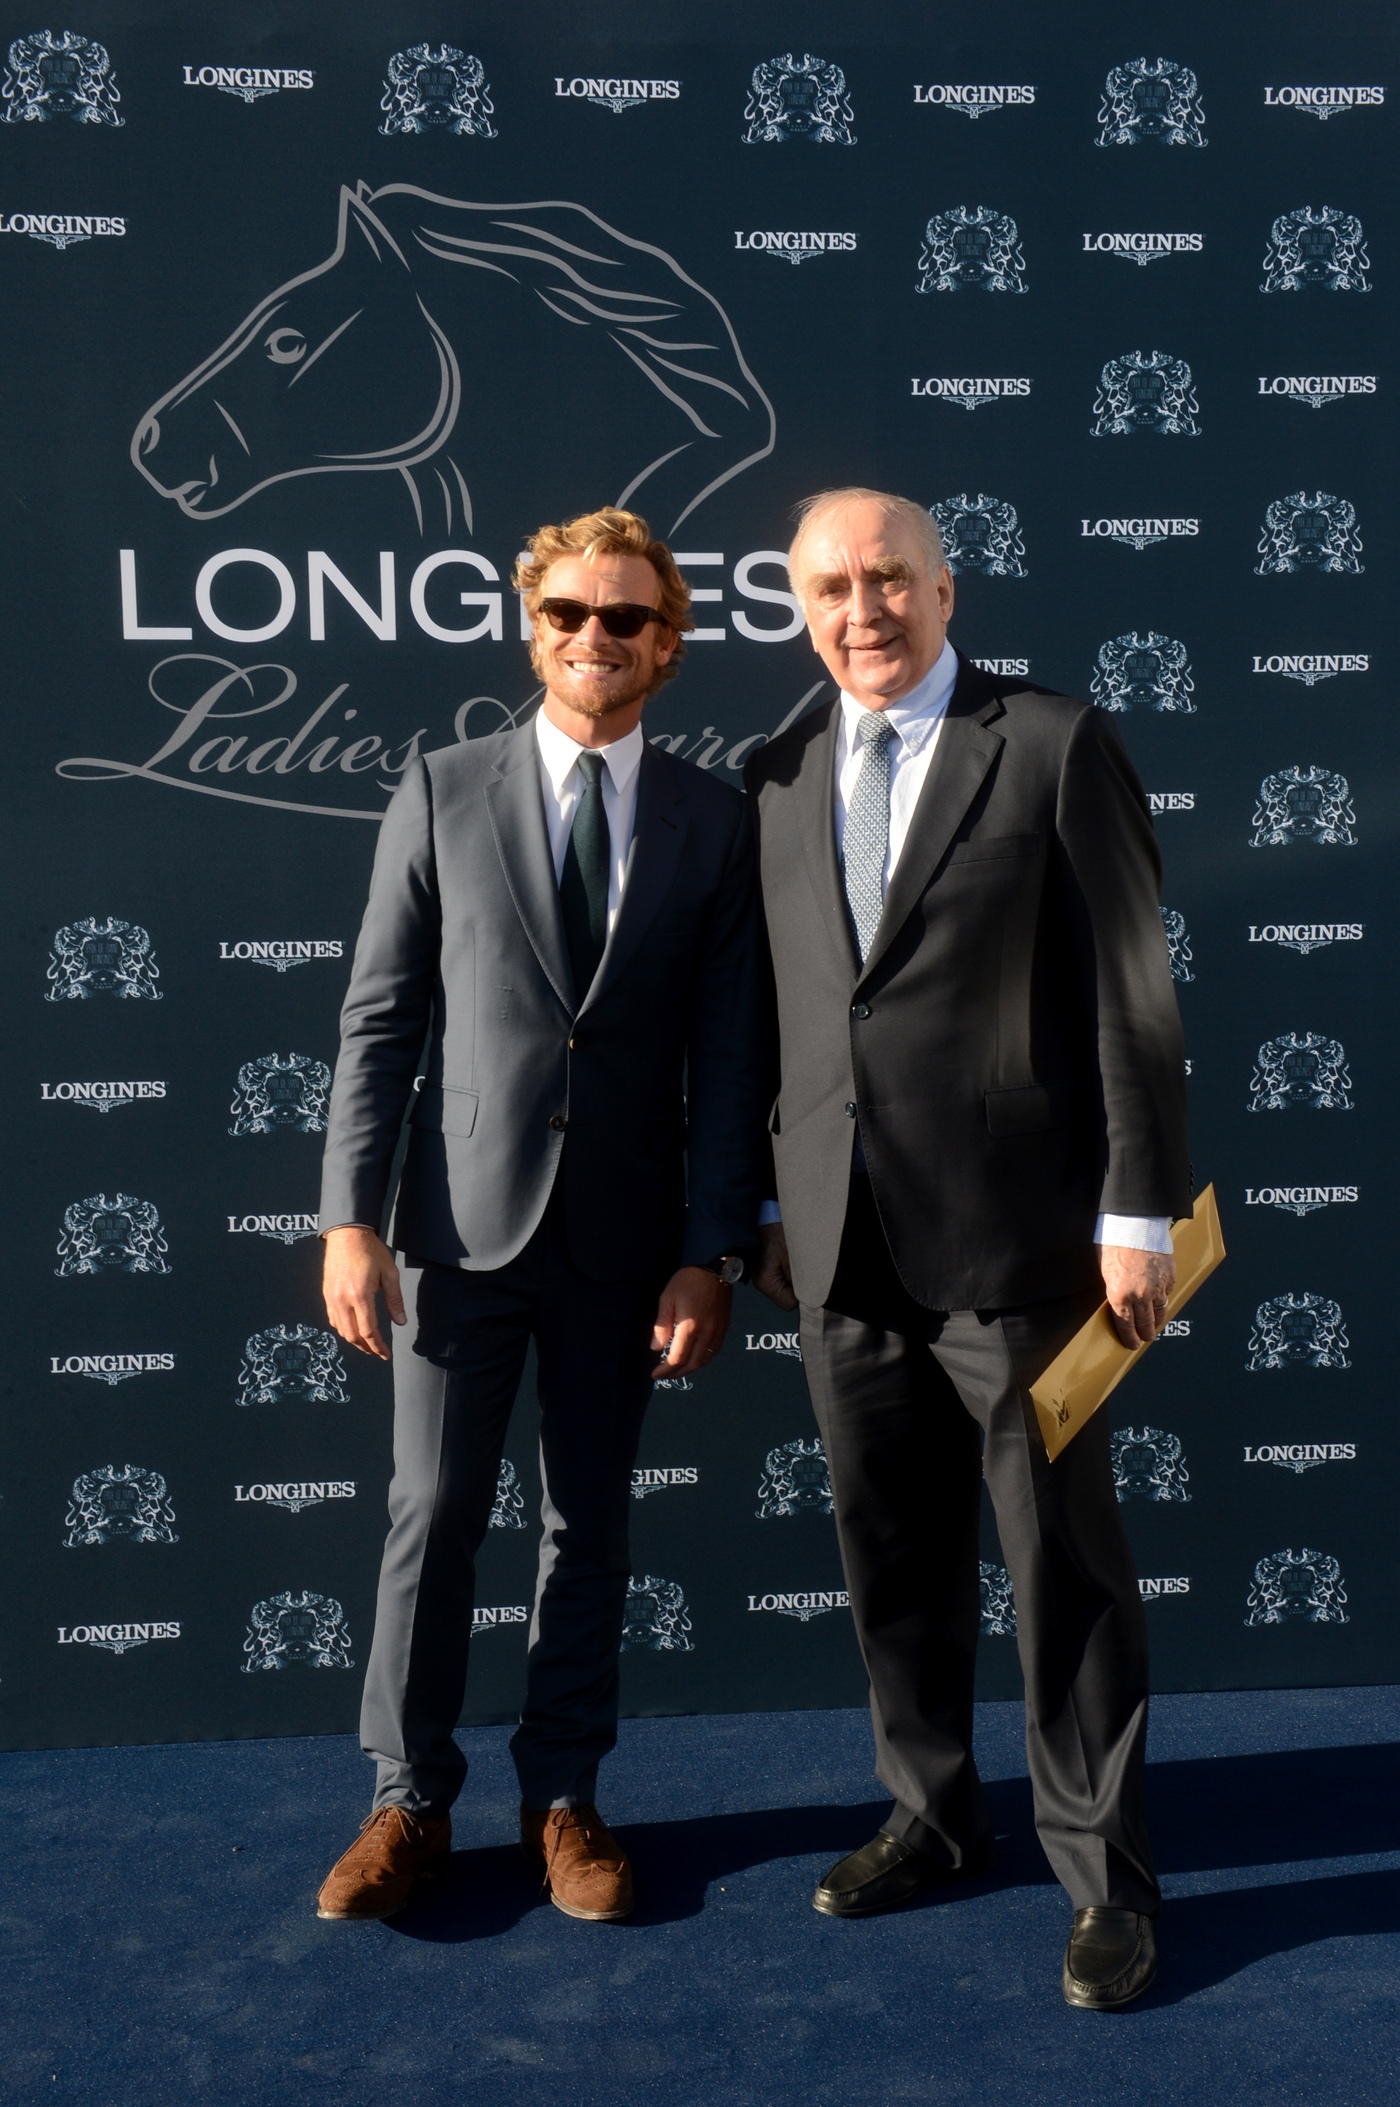 Longines Flat Racing Event: Longines Ladies Awards 3